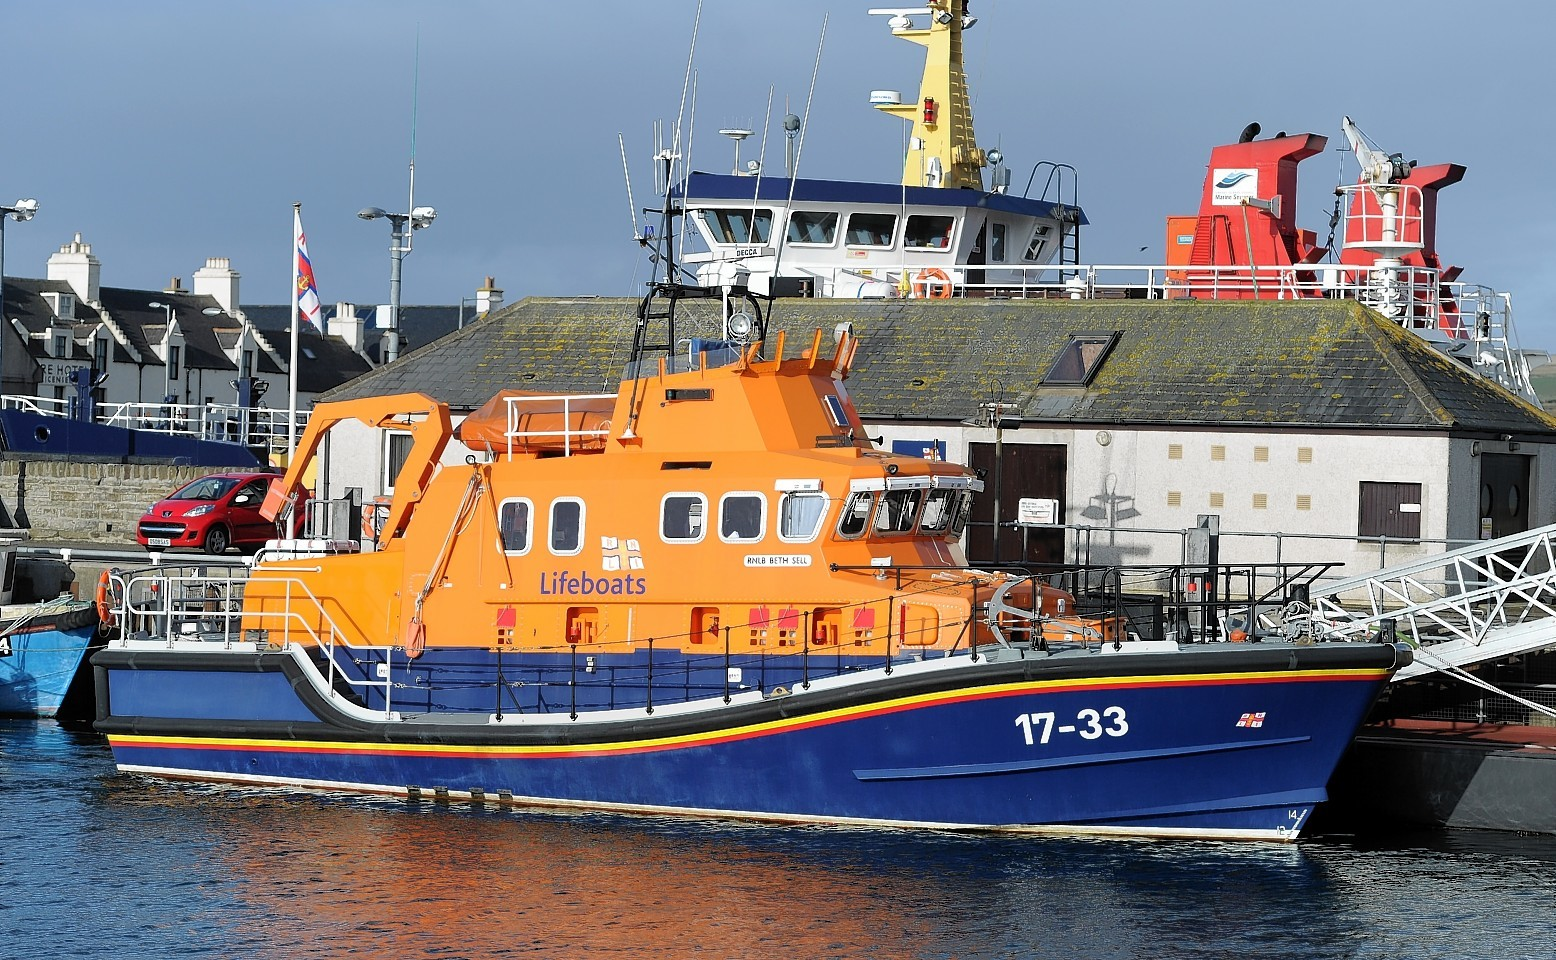 Kirkwall lifeboat was sent to assist